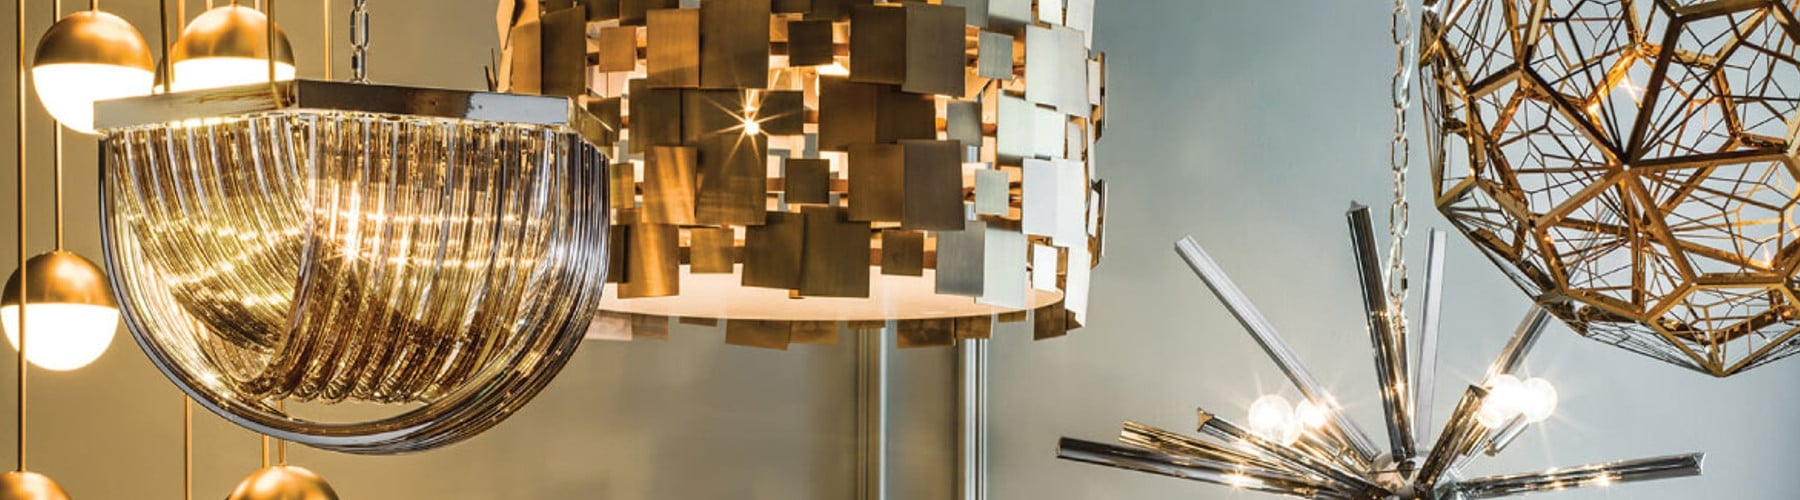 Online lighting shops dubai